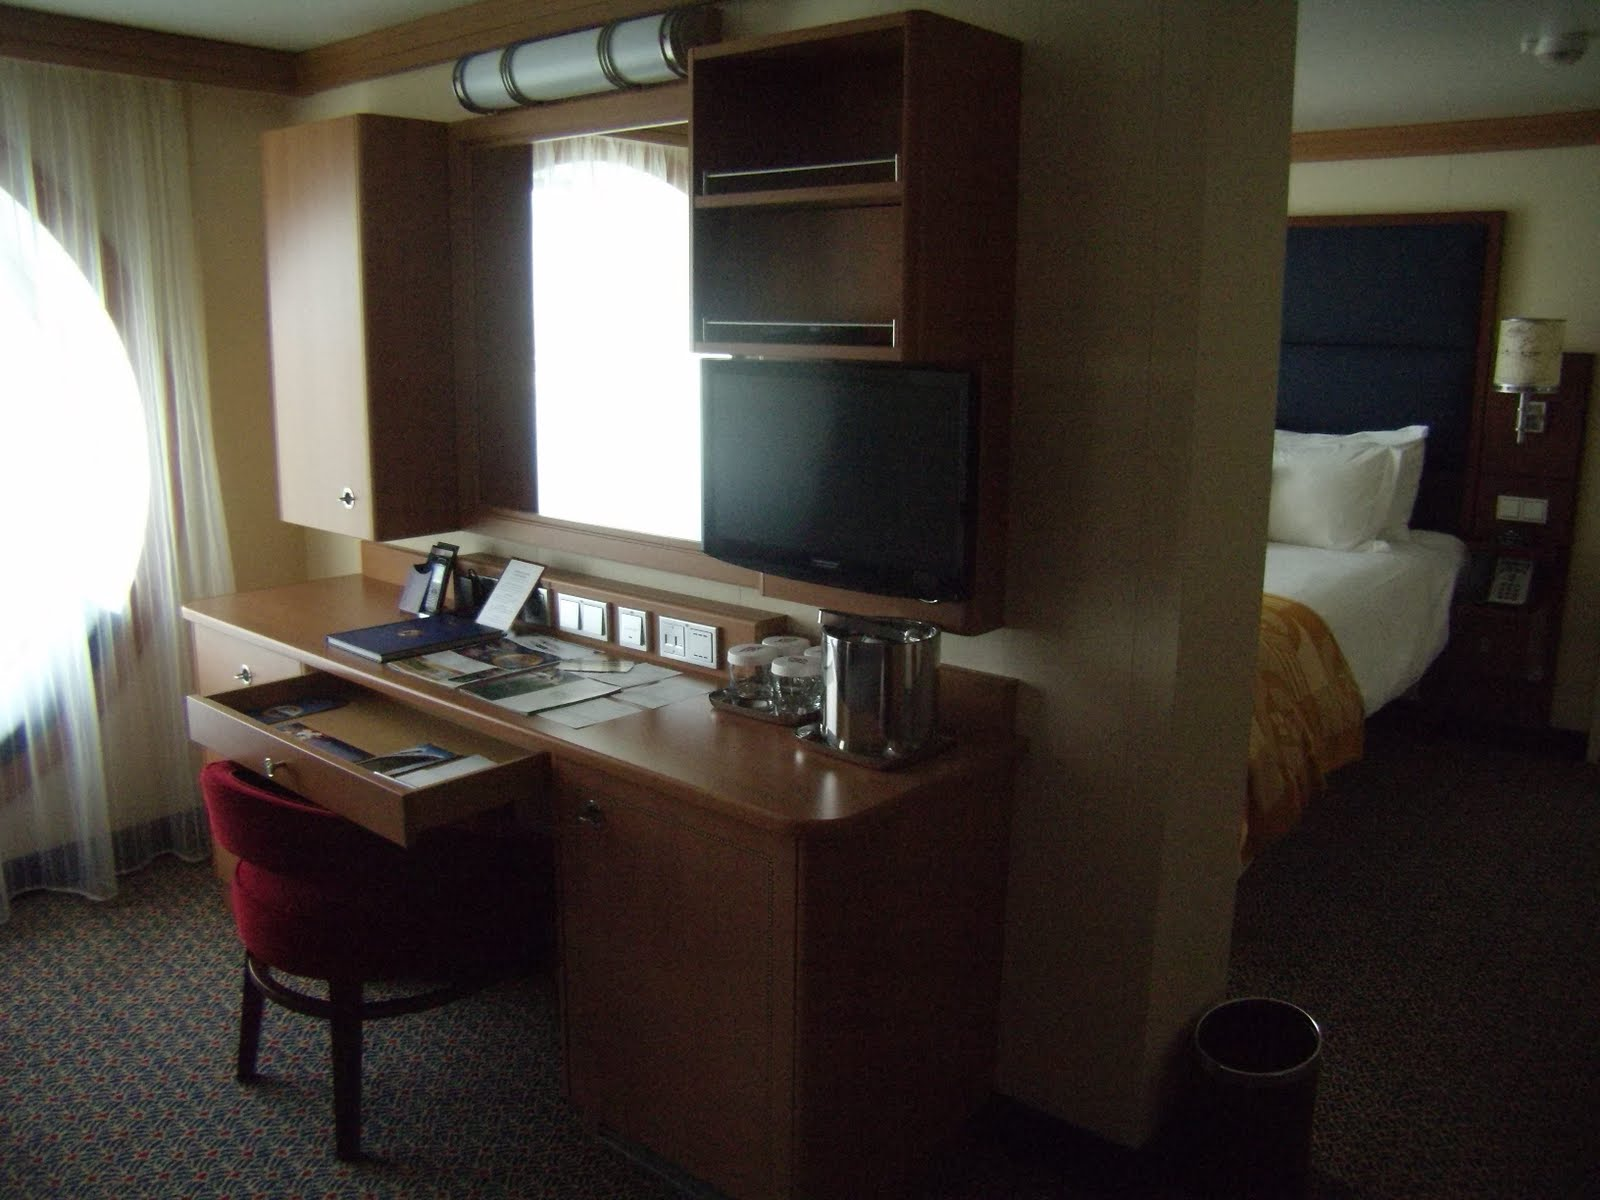 Williams Family Stateroom 5022 On The Disney Dream